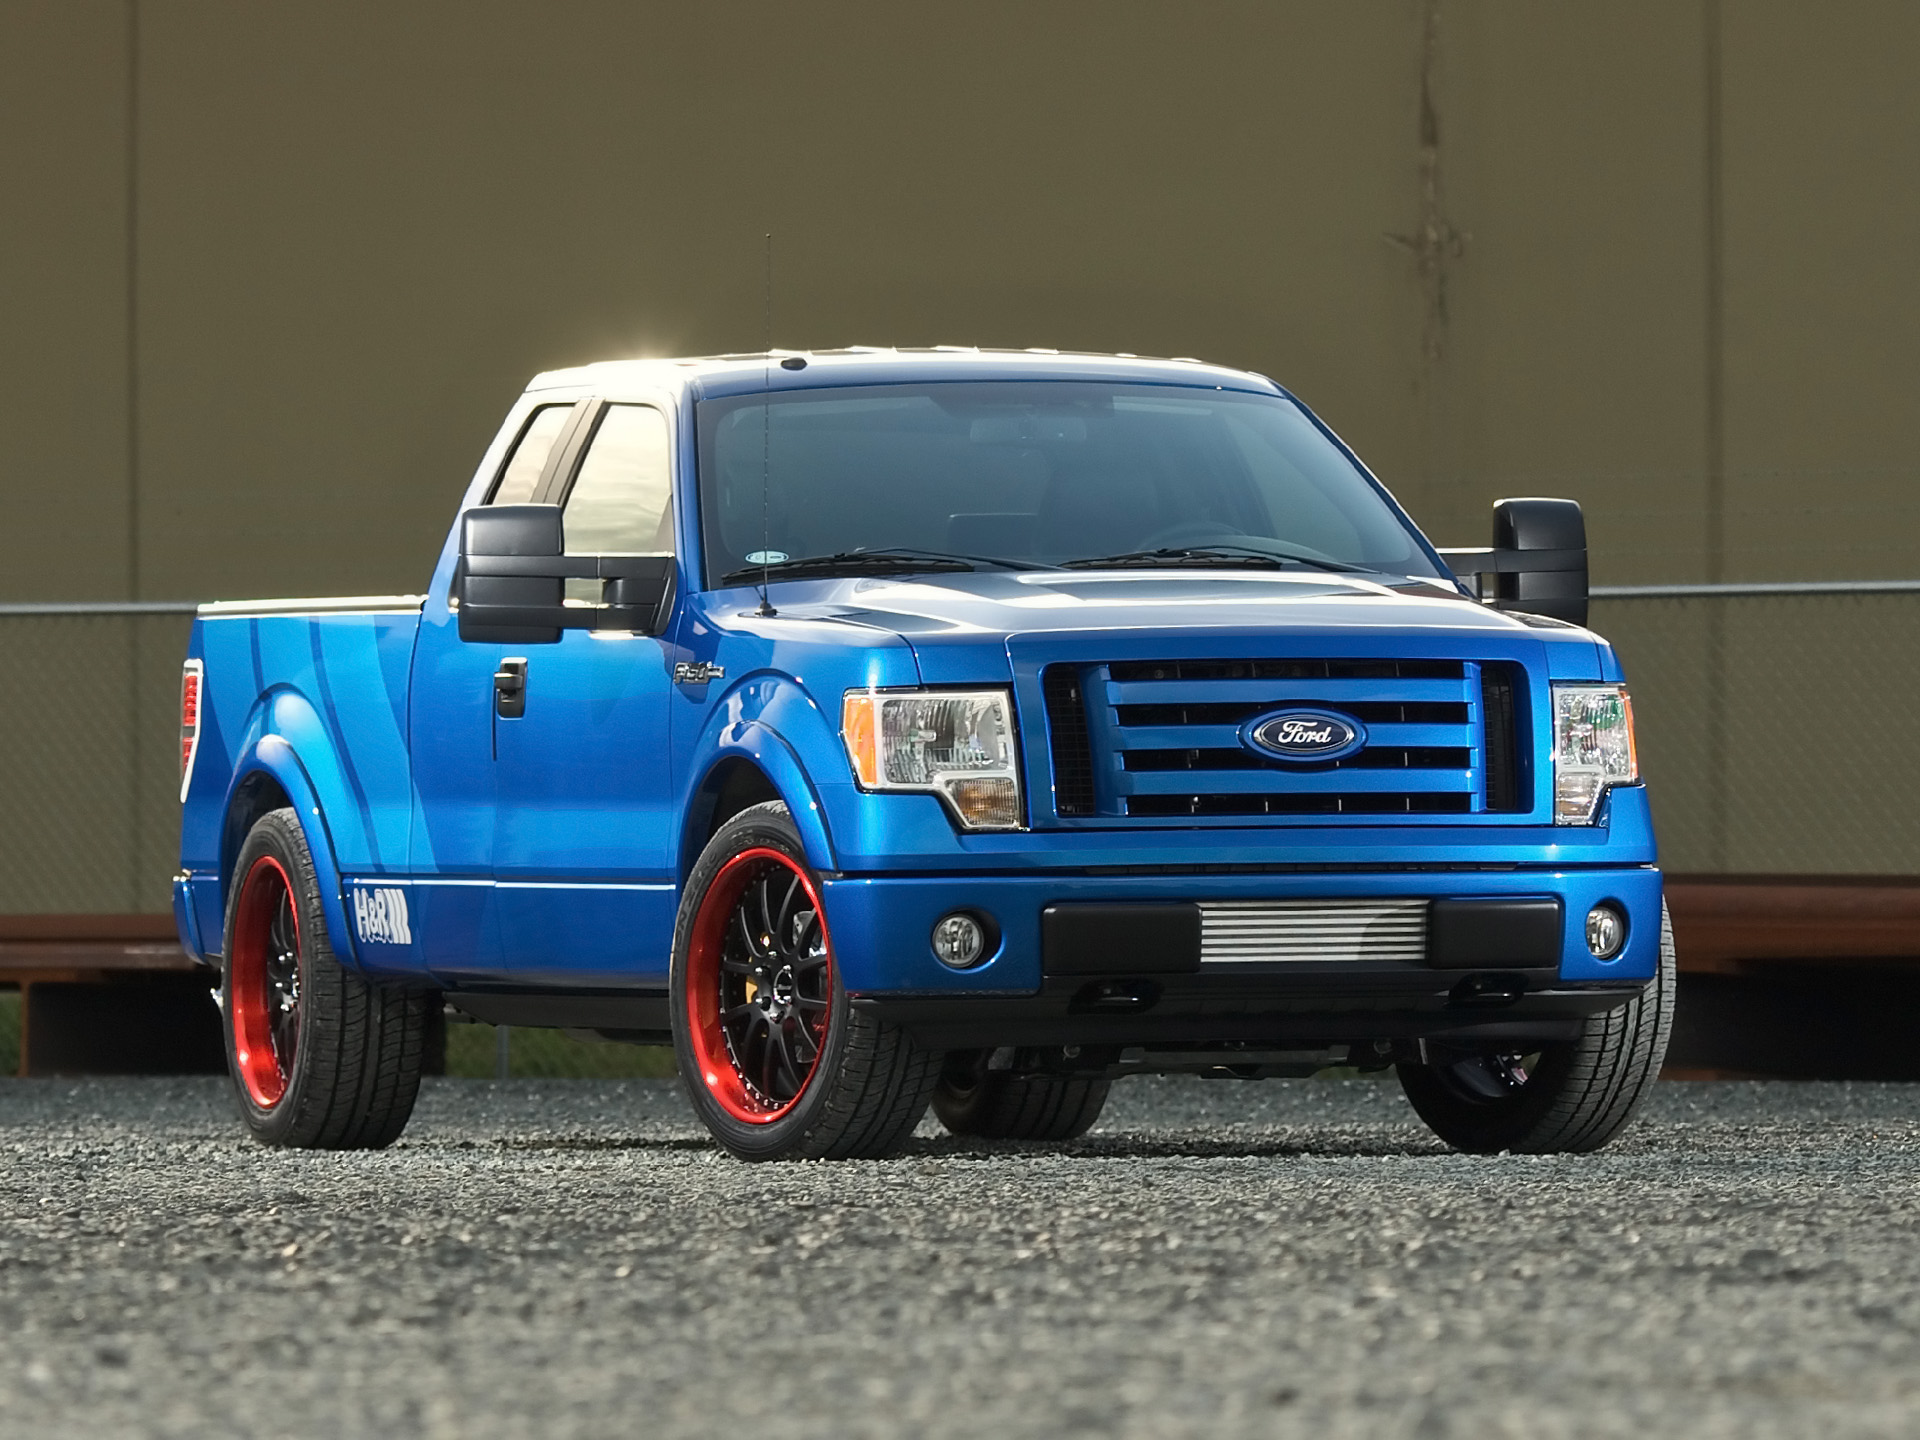 2009 ford f 150 pickup truck muscle hot rod rods tuning. Black Bedroom Furniture Sets. Home Design Ideas